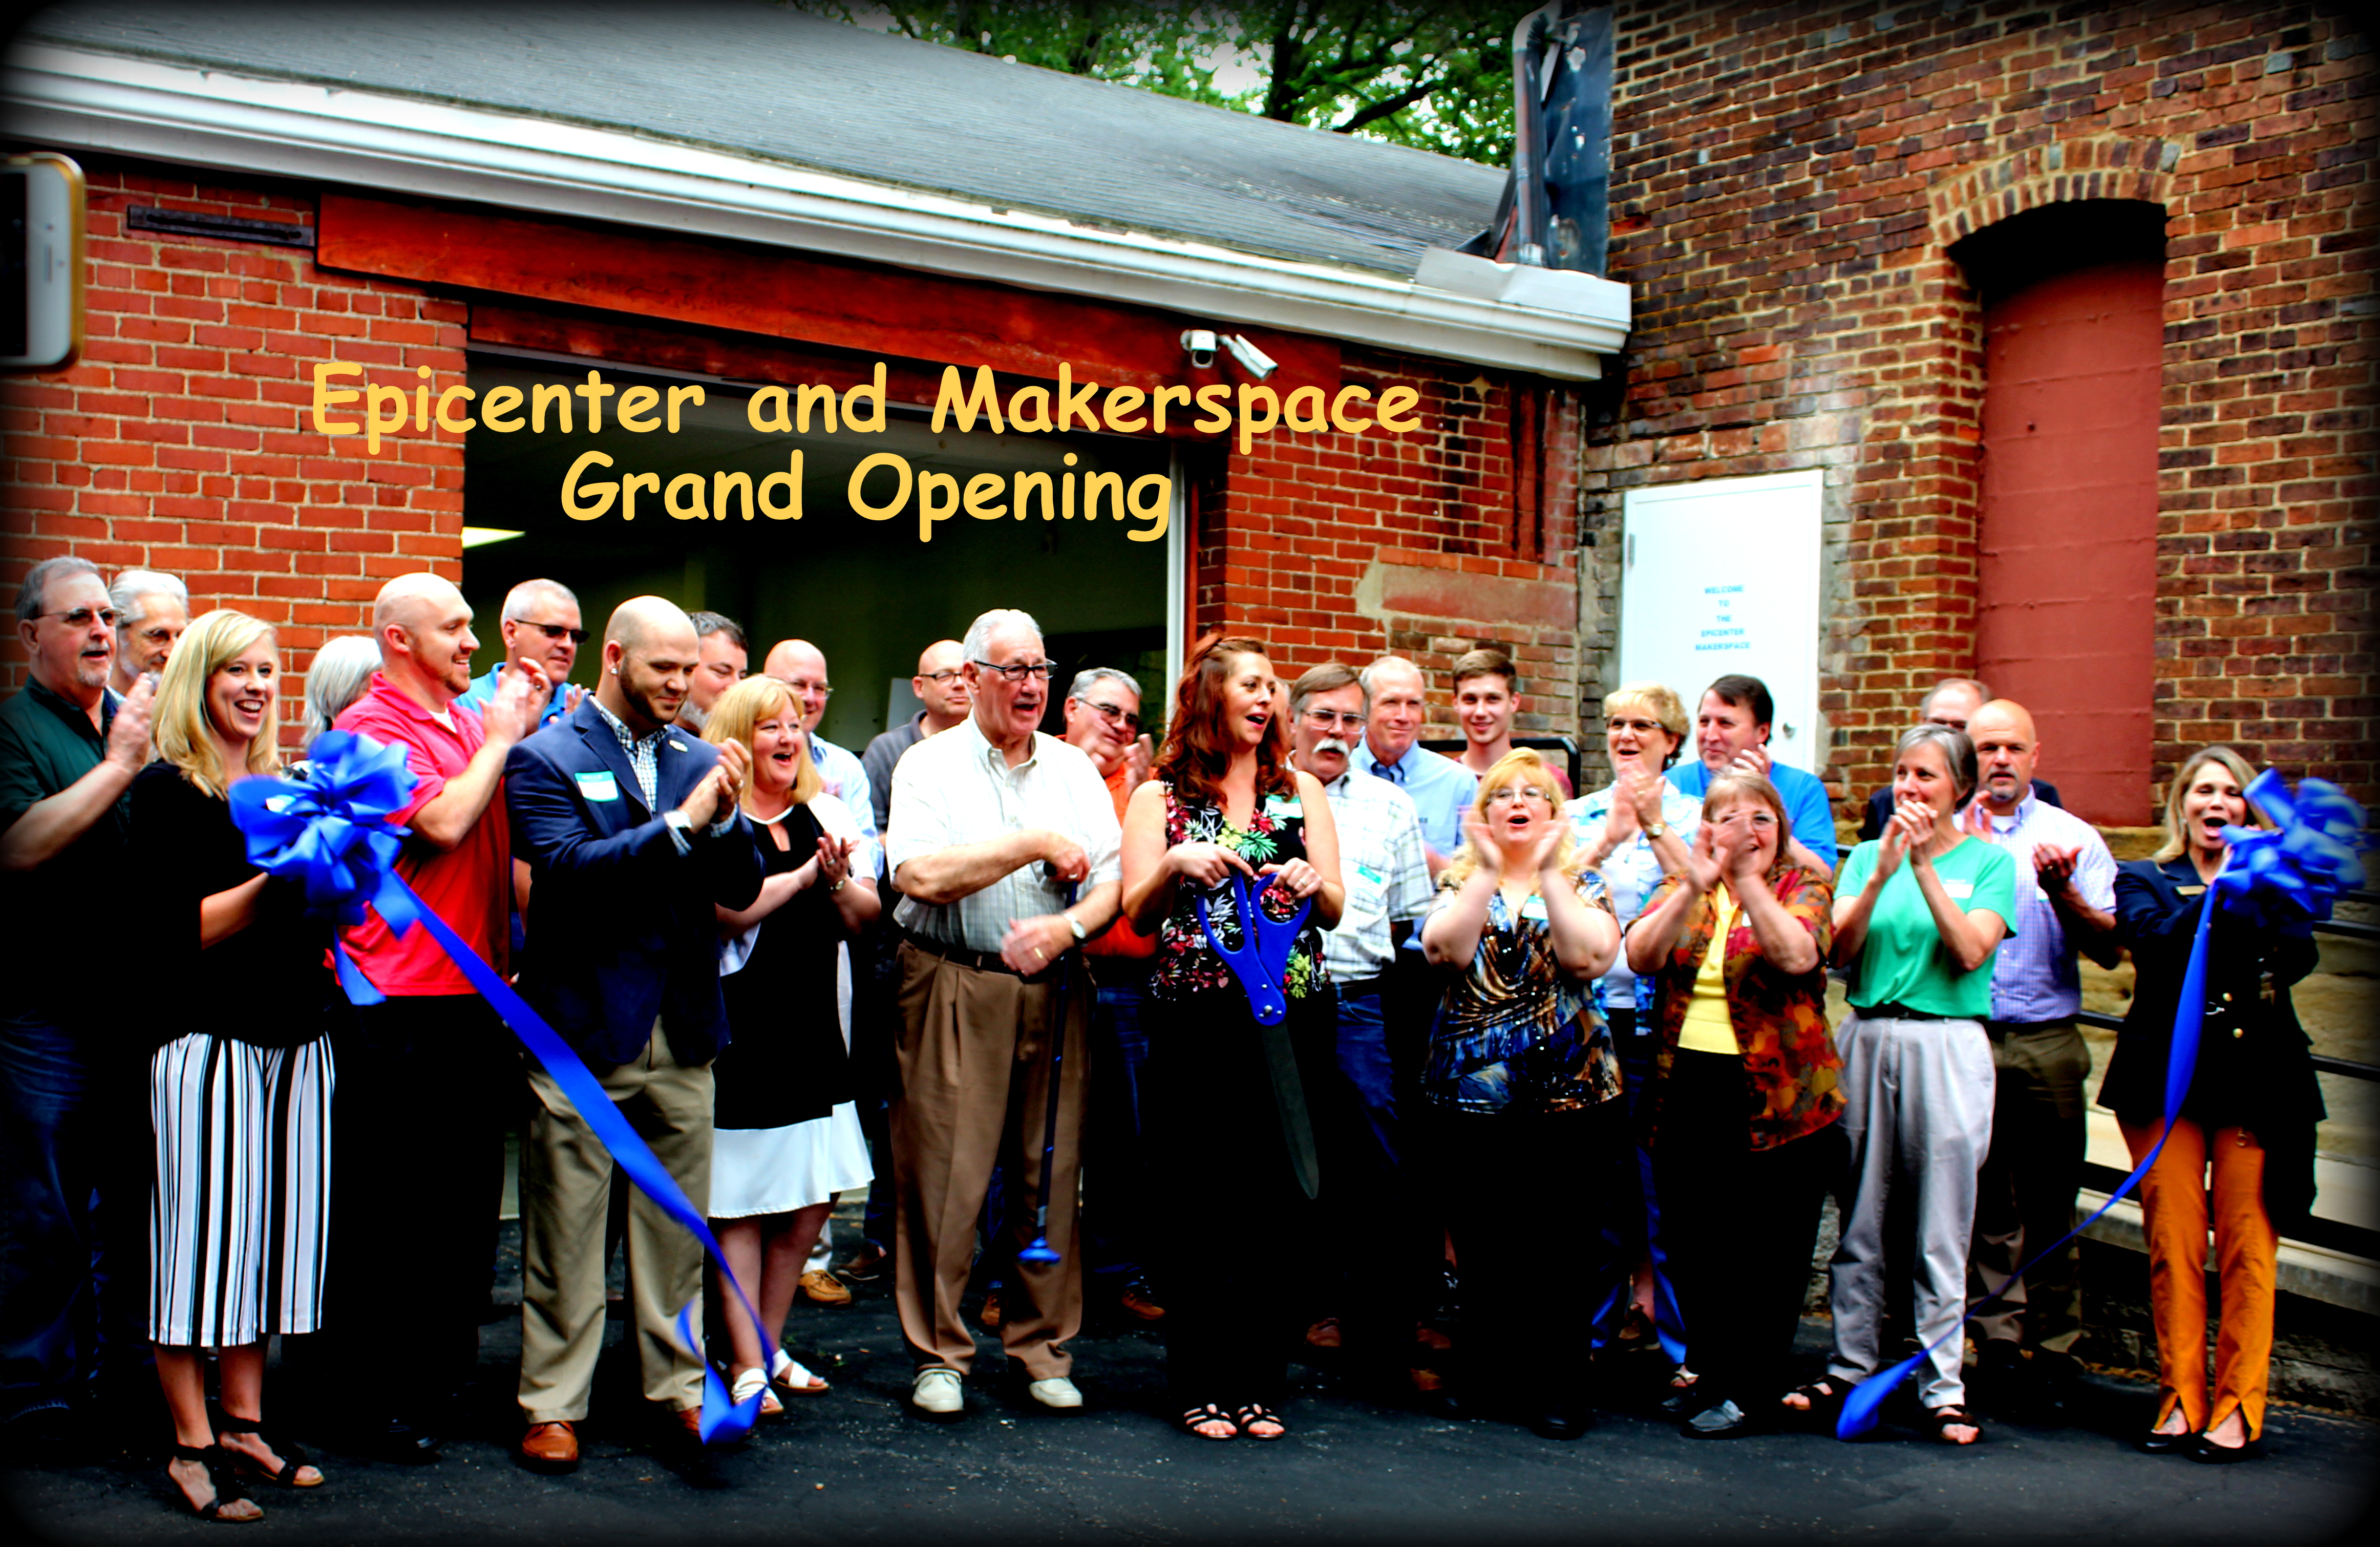 Epicenter and Makerspace Grand Opening